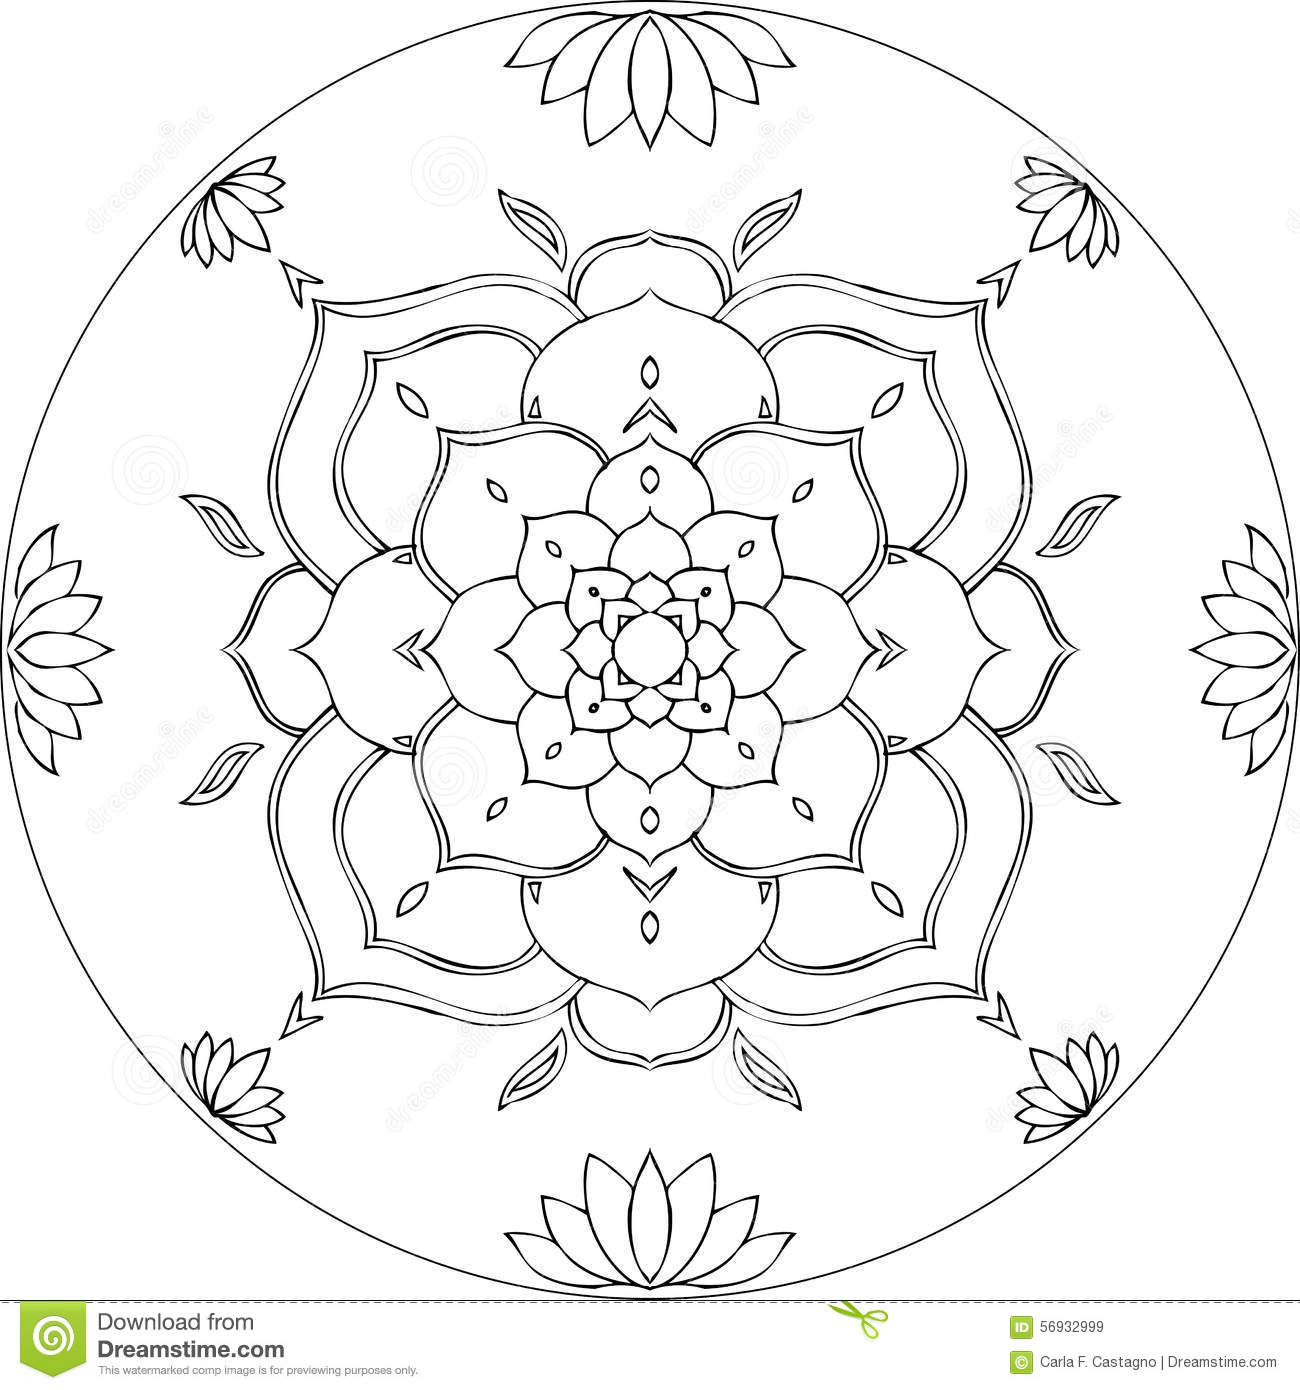 Image Result For Lotus Flower Mandala Coloring Pages Printable